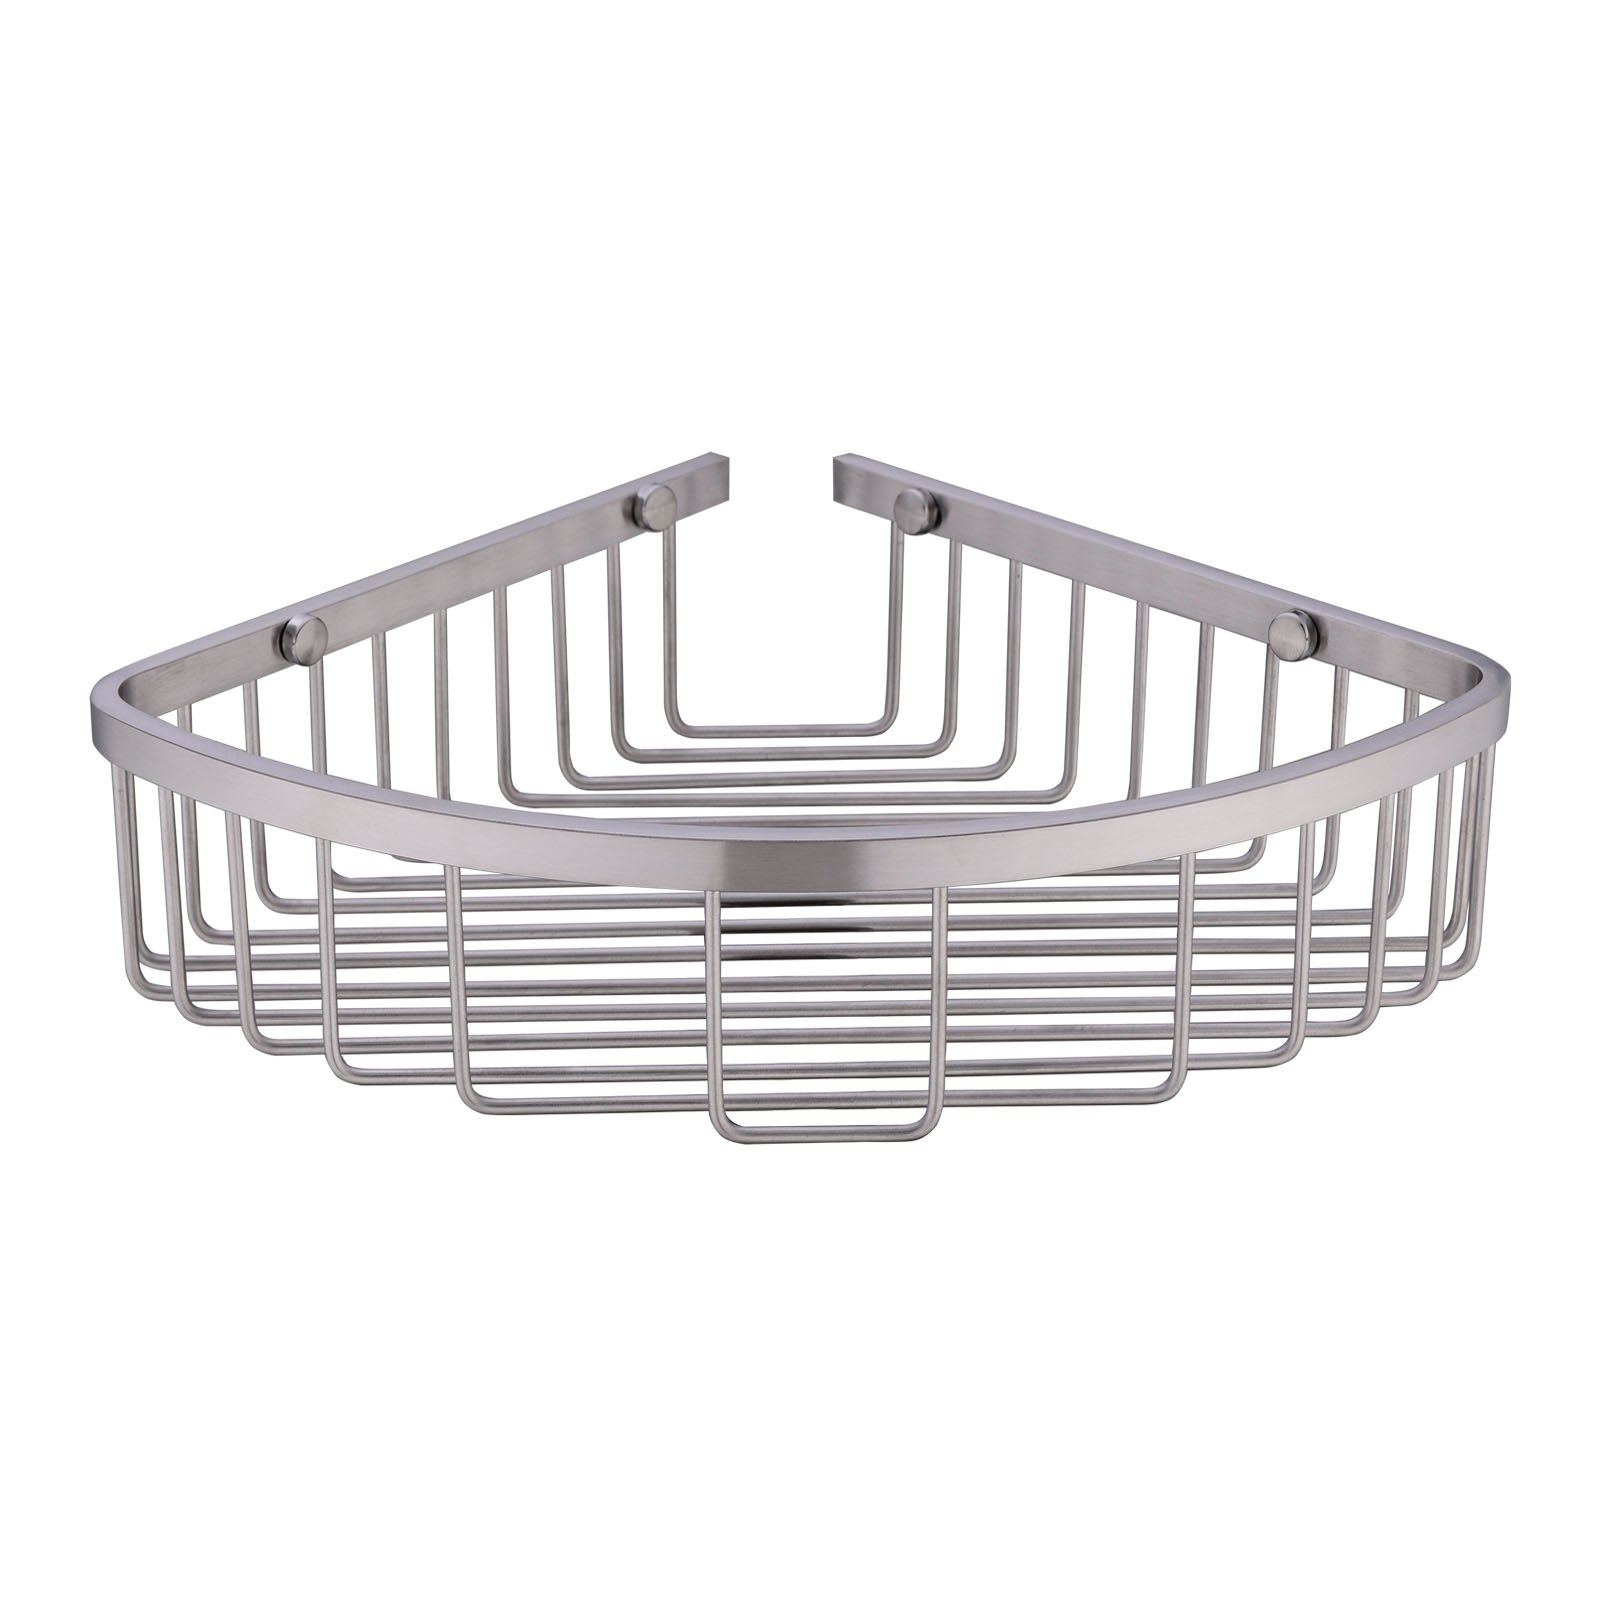 304 Stainless Steel Shower Caddy Corner Basket Shelf Bathroom Organizer Wall Mounted Storage, Brushed Nickel